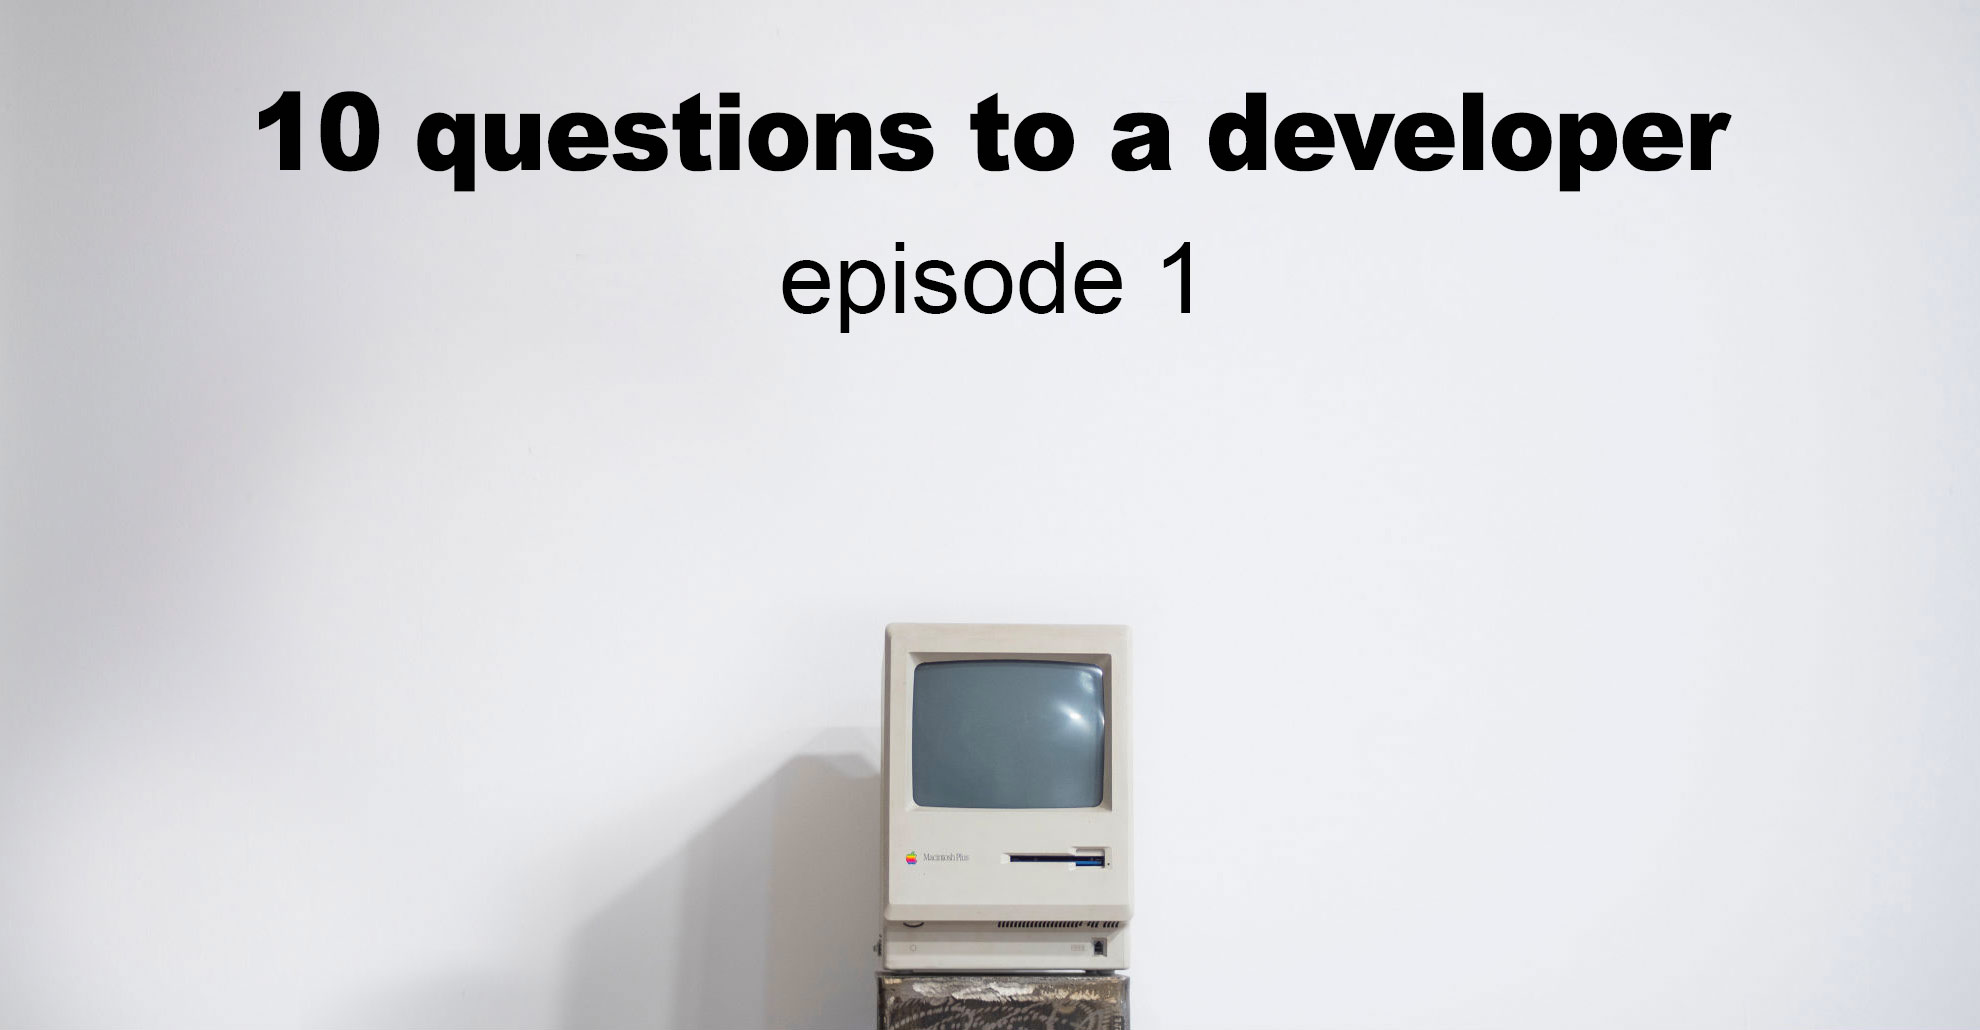 I am a useless idiot, so I want to quit my job: 10 questions to a software developer, a pilot episode - 1